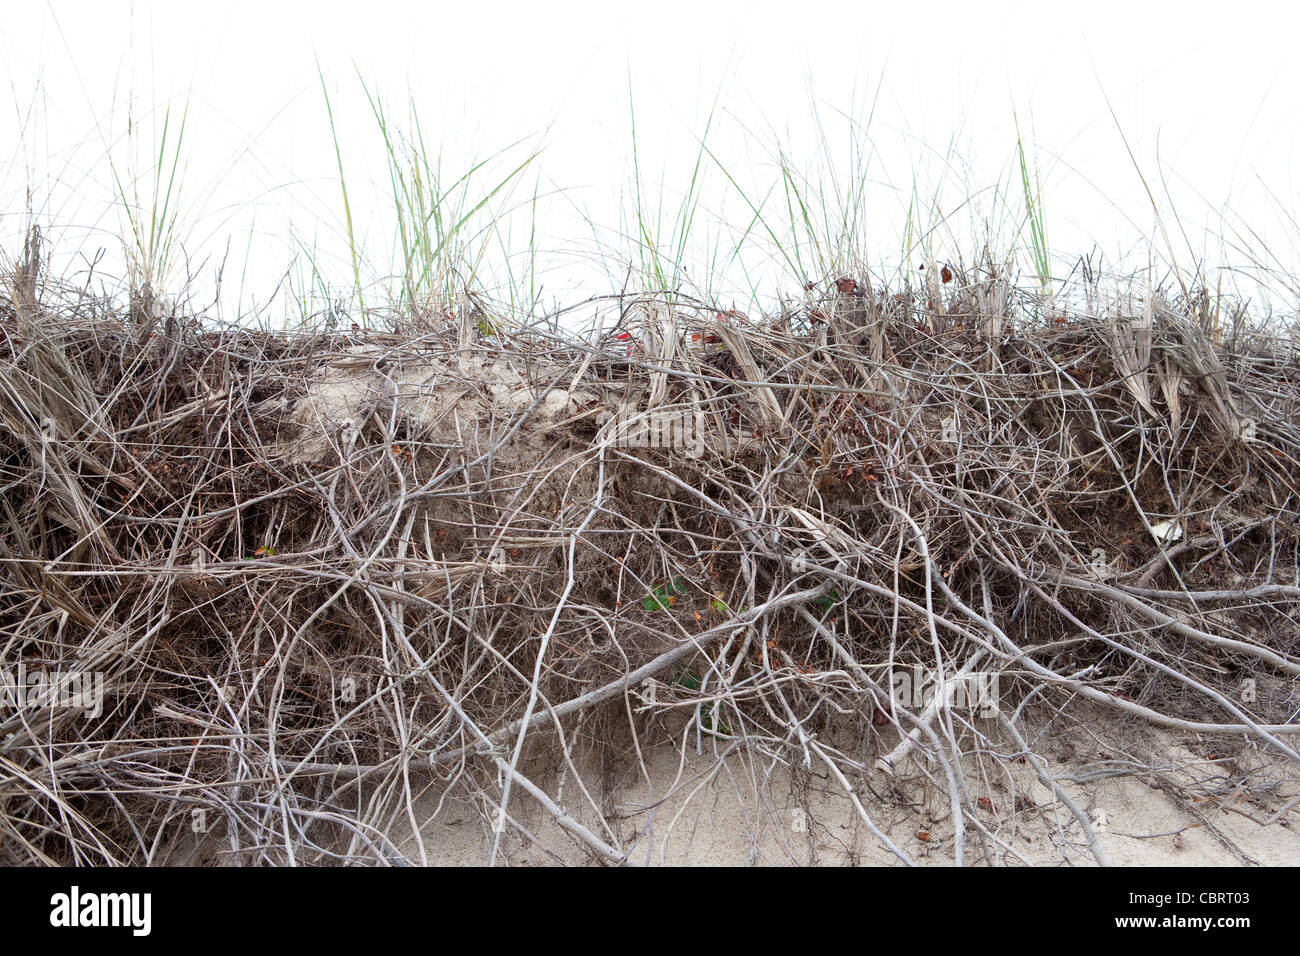 Dune with grasses, Cape Cod MA. - Stock Image